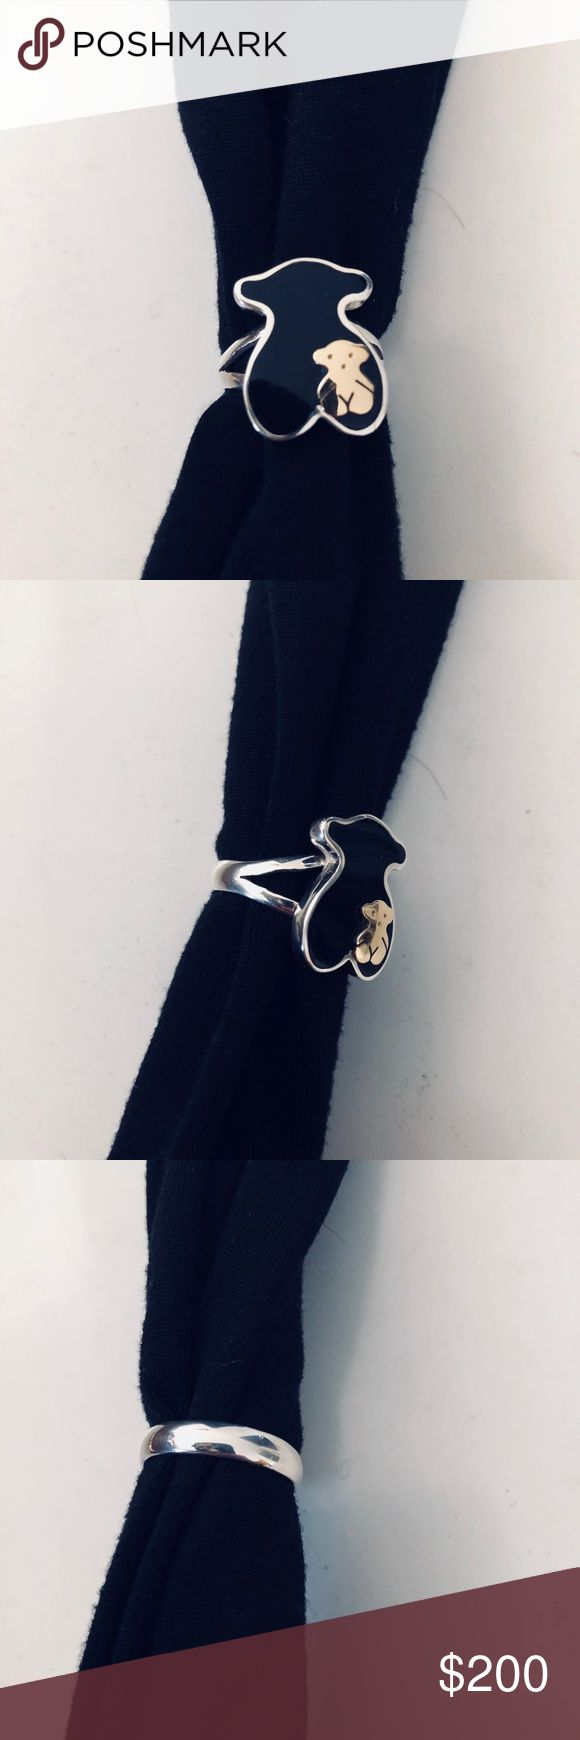 Silver ring 950 Silver ring tiny teddy bear 18k gold and the black teddy bear behind it is black onyx & Other Stories Jewelry Rings